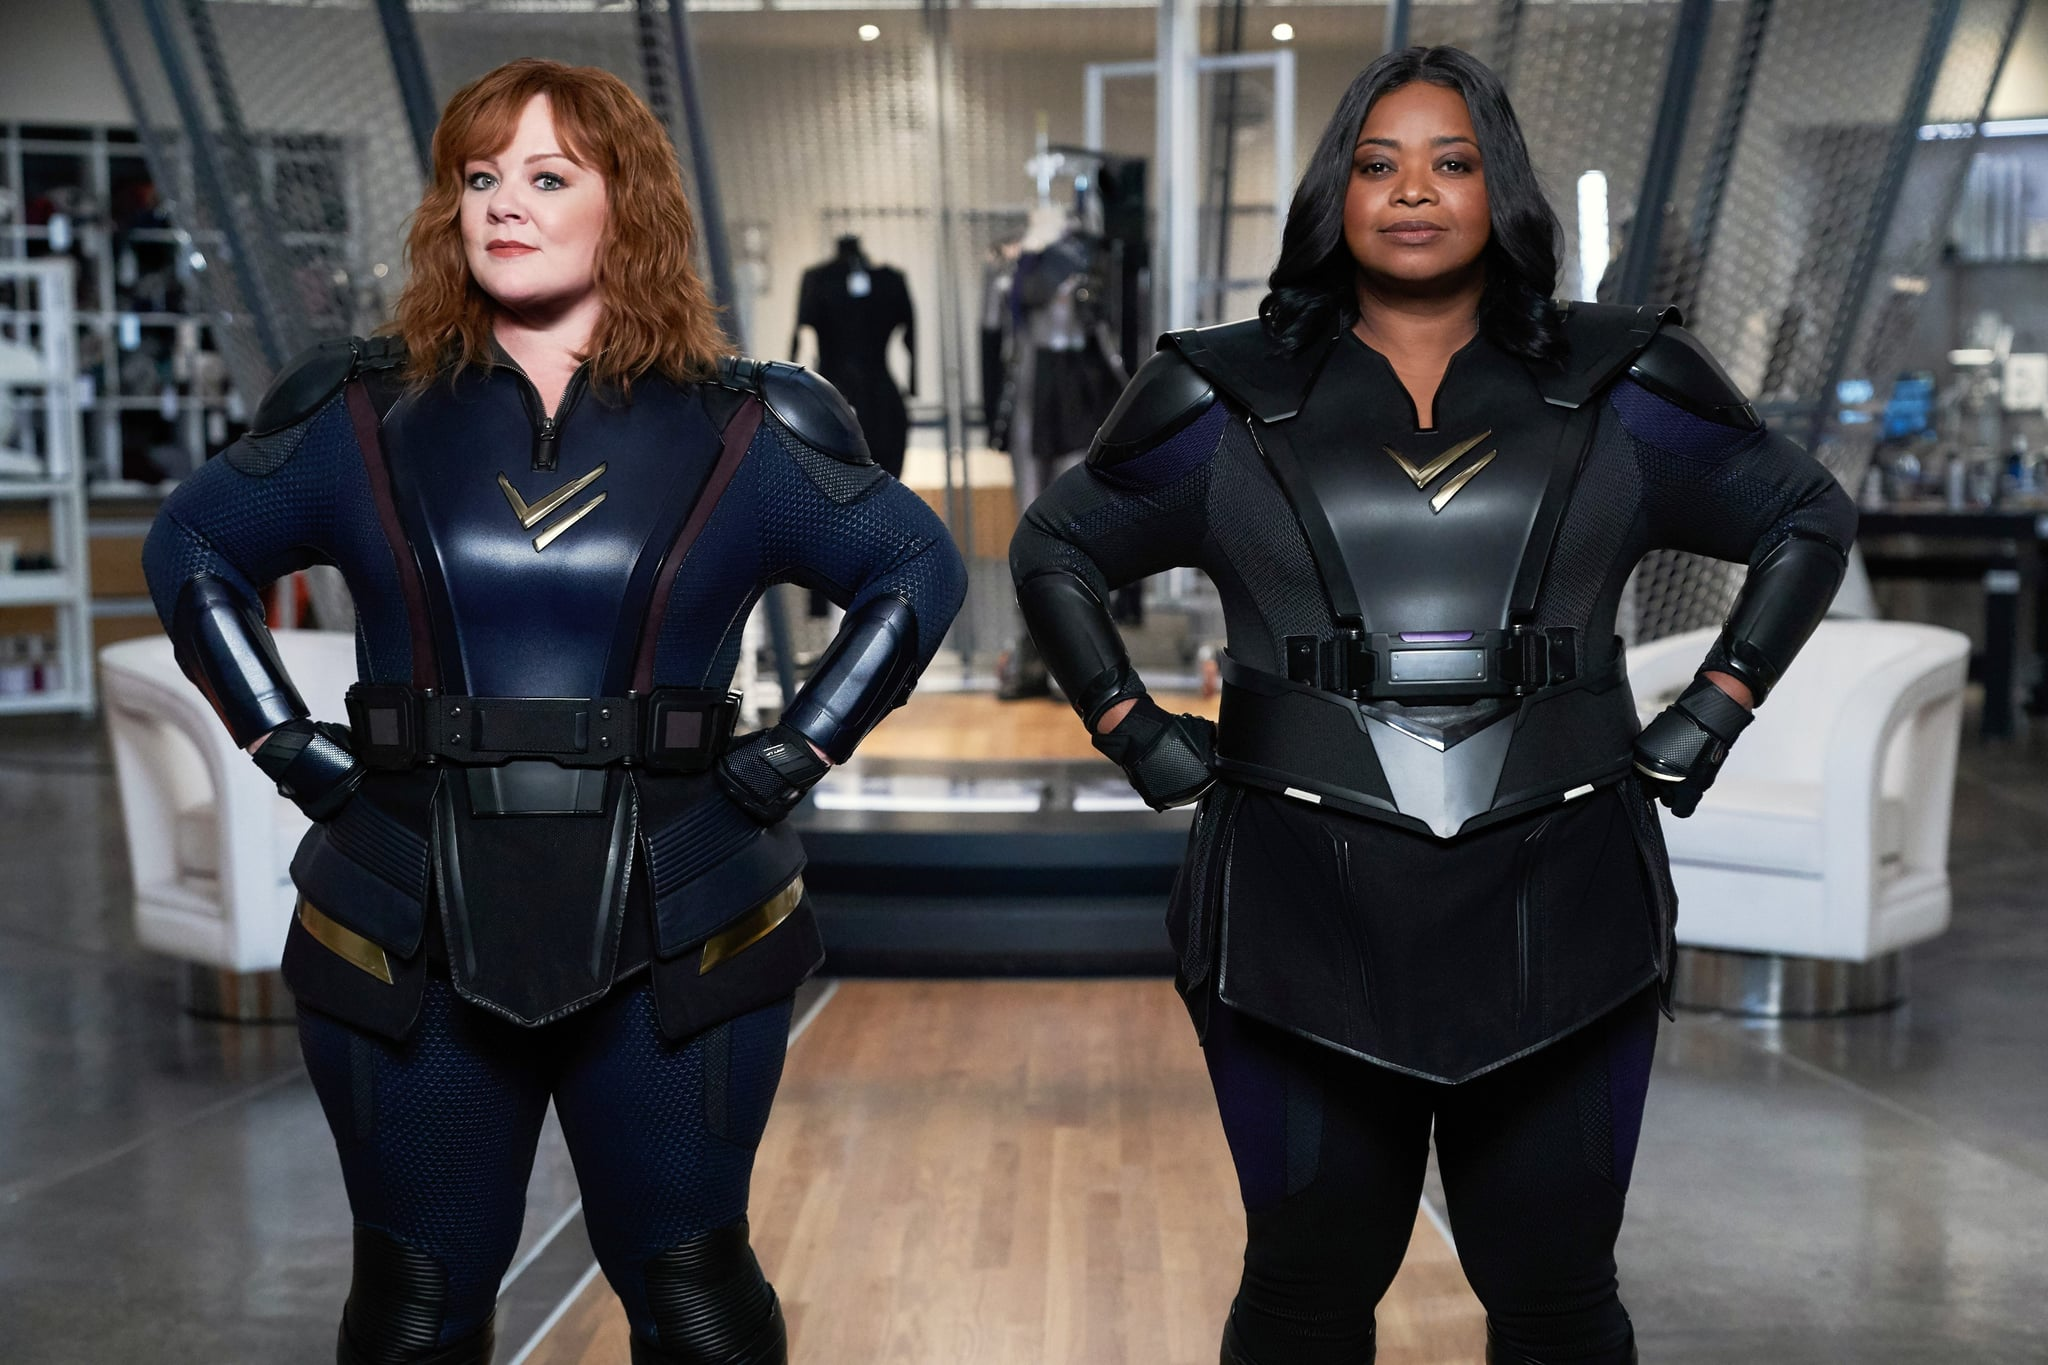 THUNDER FORCE, from left: Melissa McCarthy, Octavia Spencer, 2021. ph: Hopper Stone /  Netflix / Courtesy Everett Collection